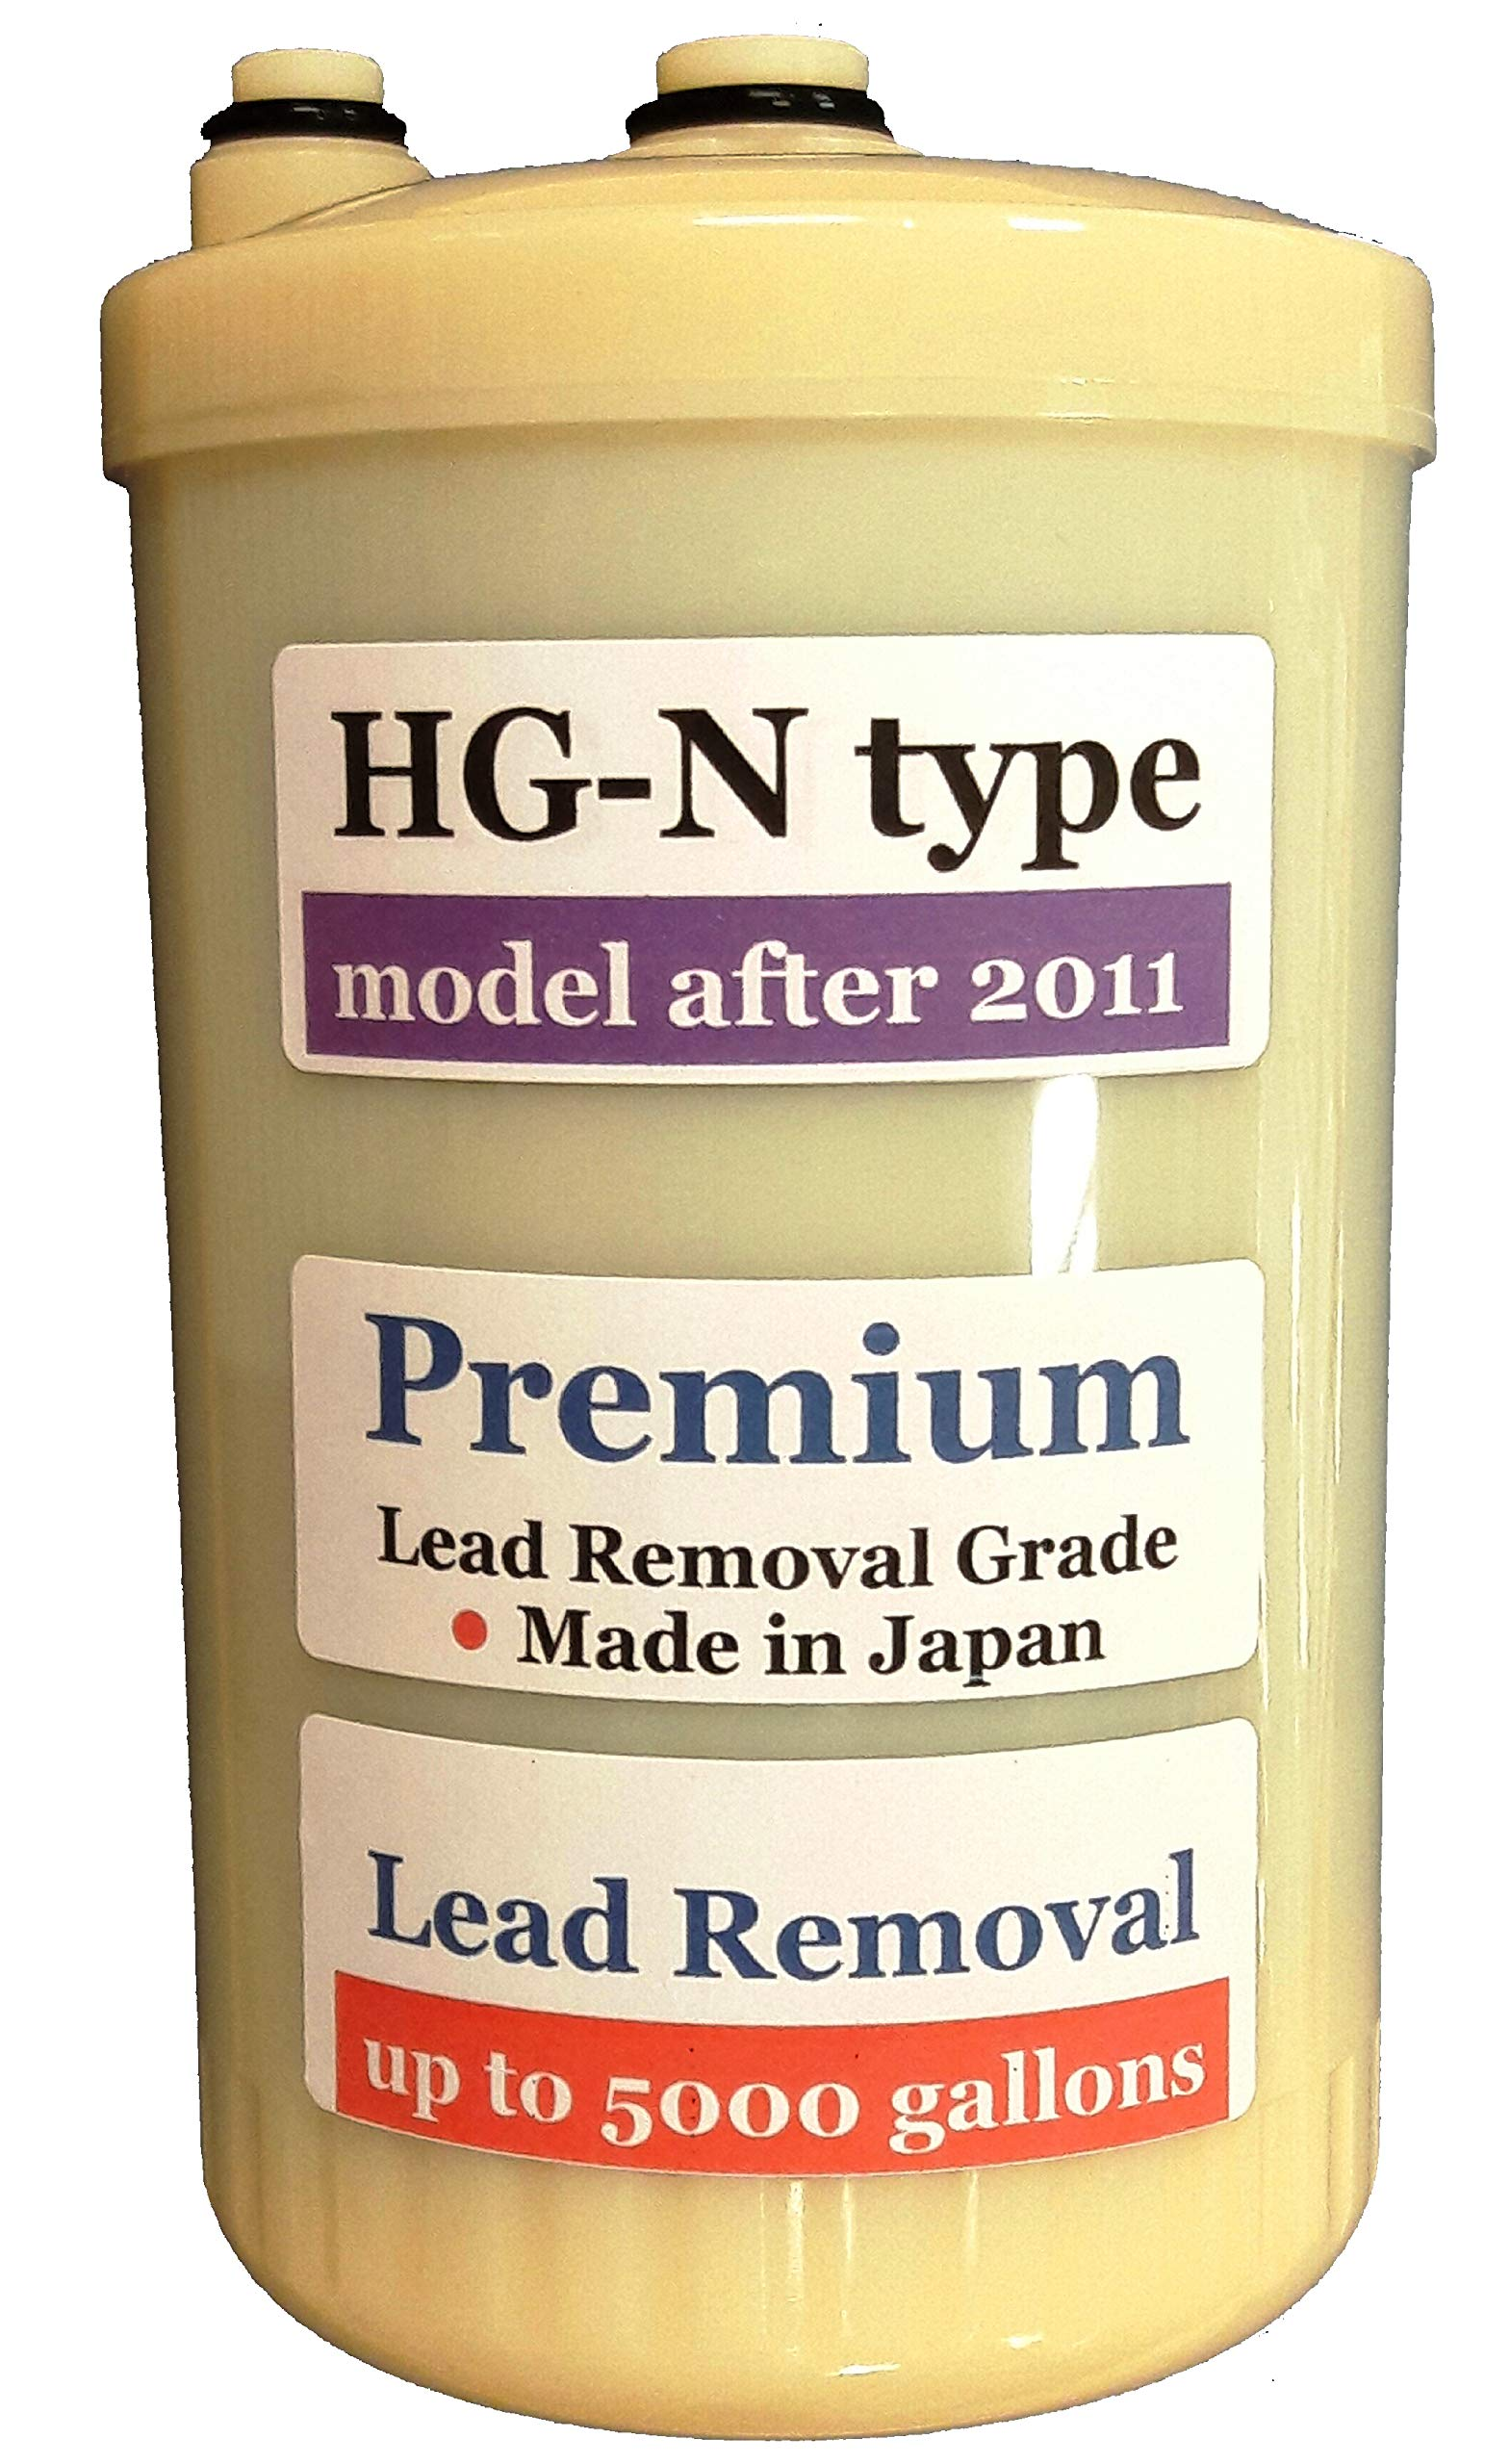 "Japan Made ""HG-N"" Type Premium Grade Compatible Filter for Enagic Kangen SD501HG-N ""HG-N"" After 2011 Newer Model(Not Compatible with Original HG Before 2010 Models)"